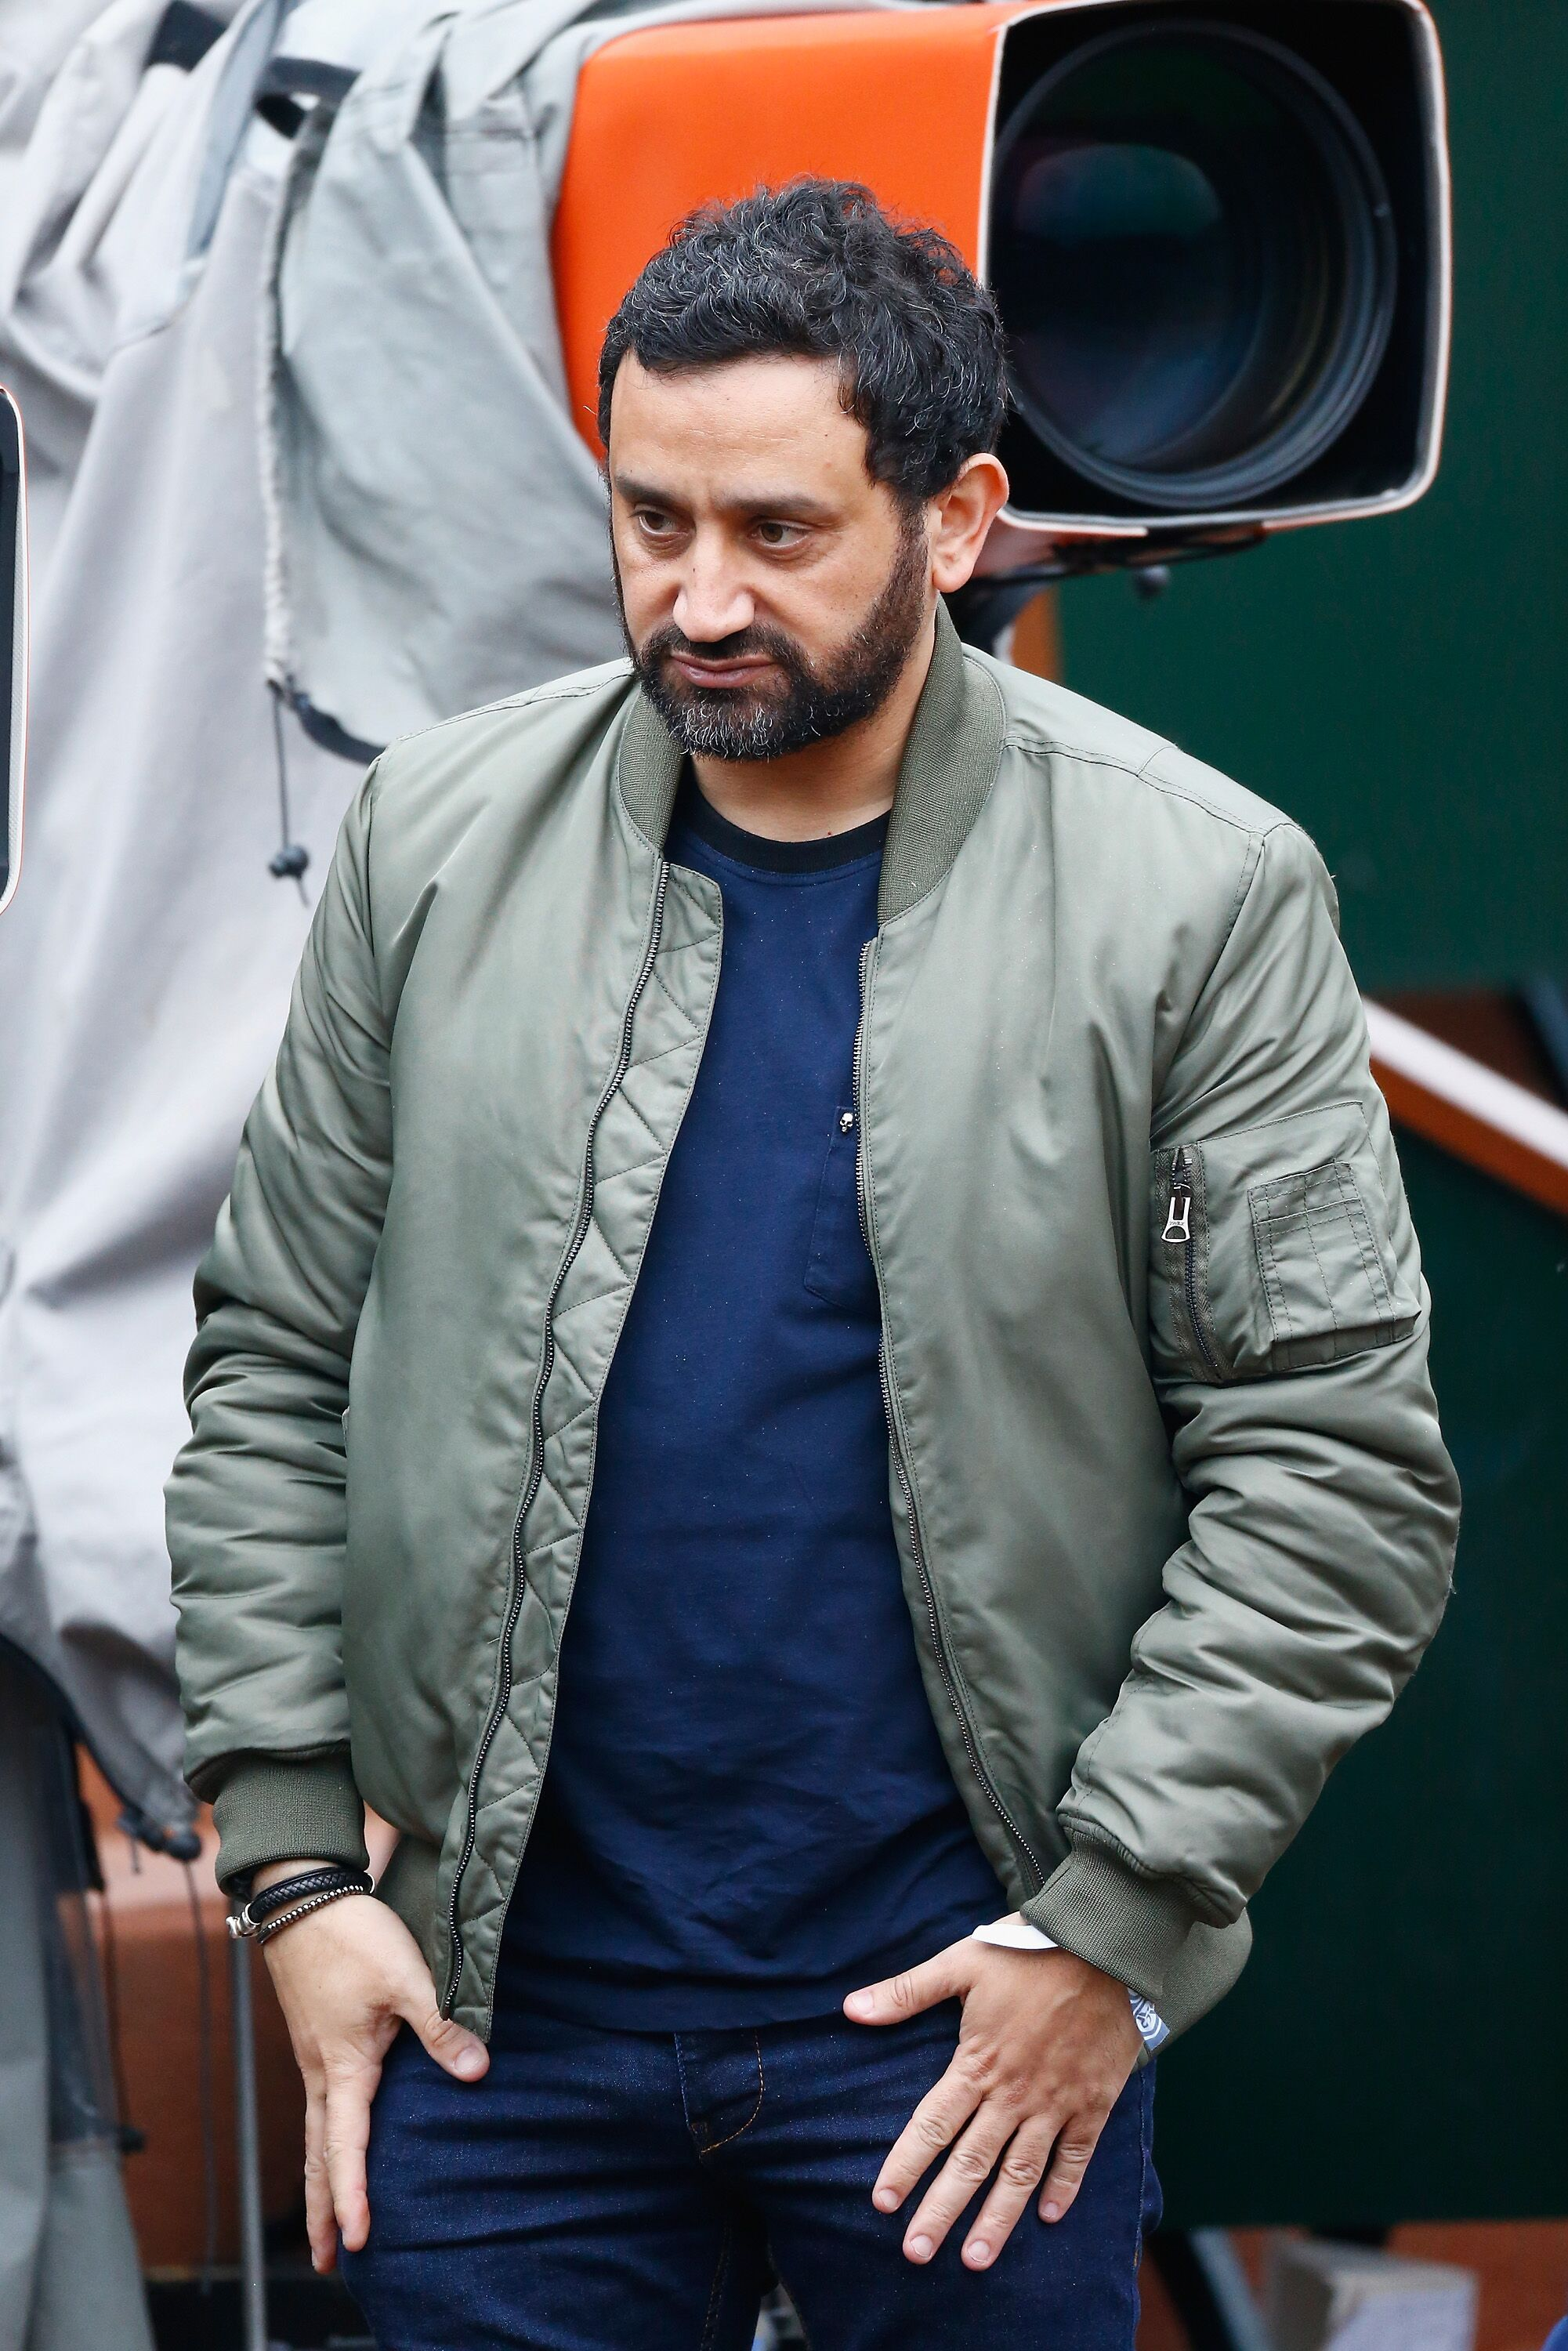 Cyril Hanouna participe à la 8ème Journée Portes Ouvertes du tennis français à Roland Garrosà Paris, France. | Photo : GettyImage